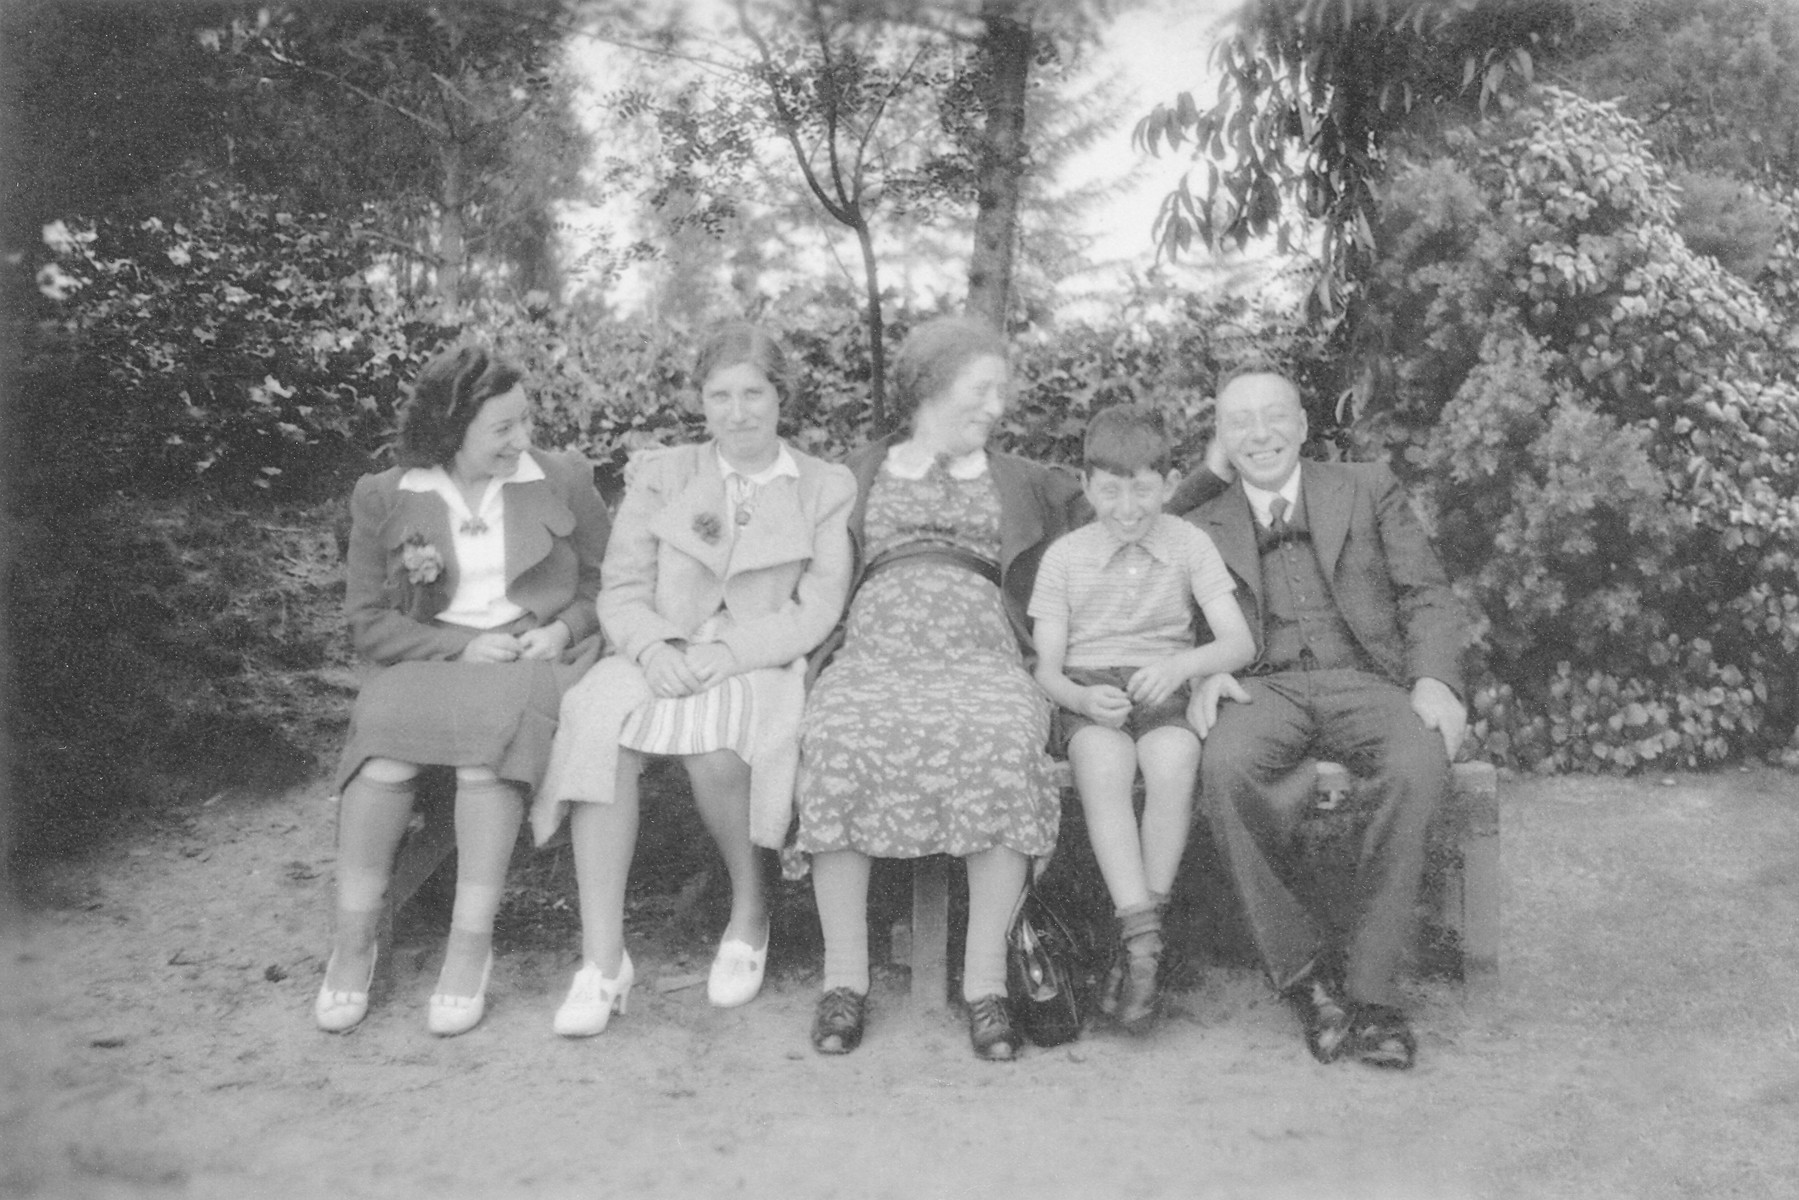 The Moses family poses on a park bench in prewar Netherlands.  Pictured from left to right are Lien Moses (Louis' half-sister), unknown, Froukje Moses, Louis Moses and Simon Moses.